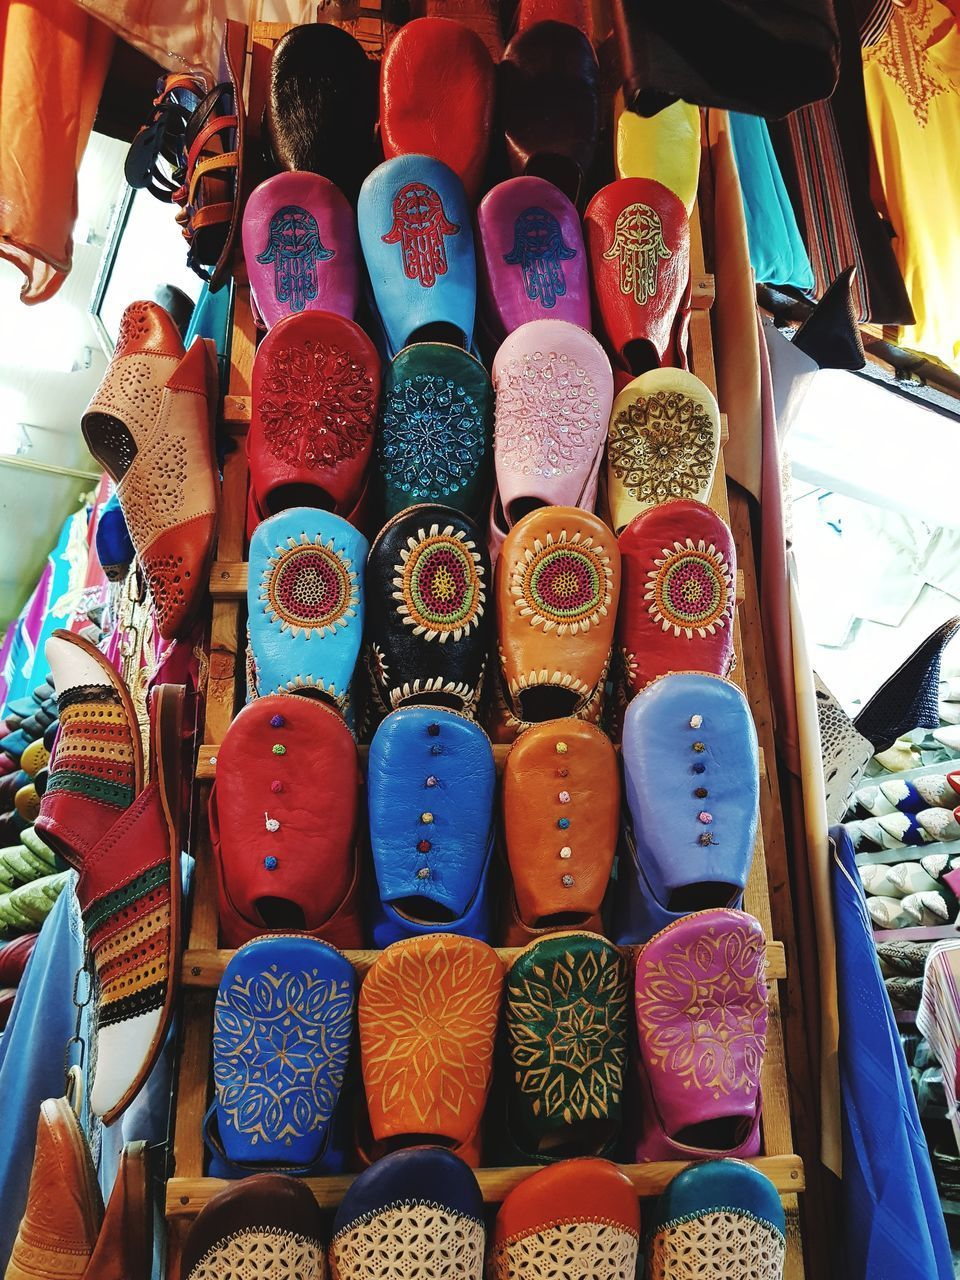 COLORFUL FOR SALE AT MARKET STALL